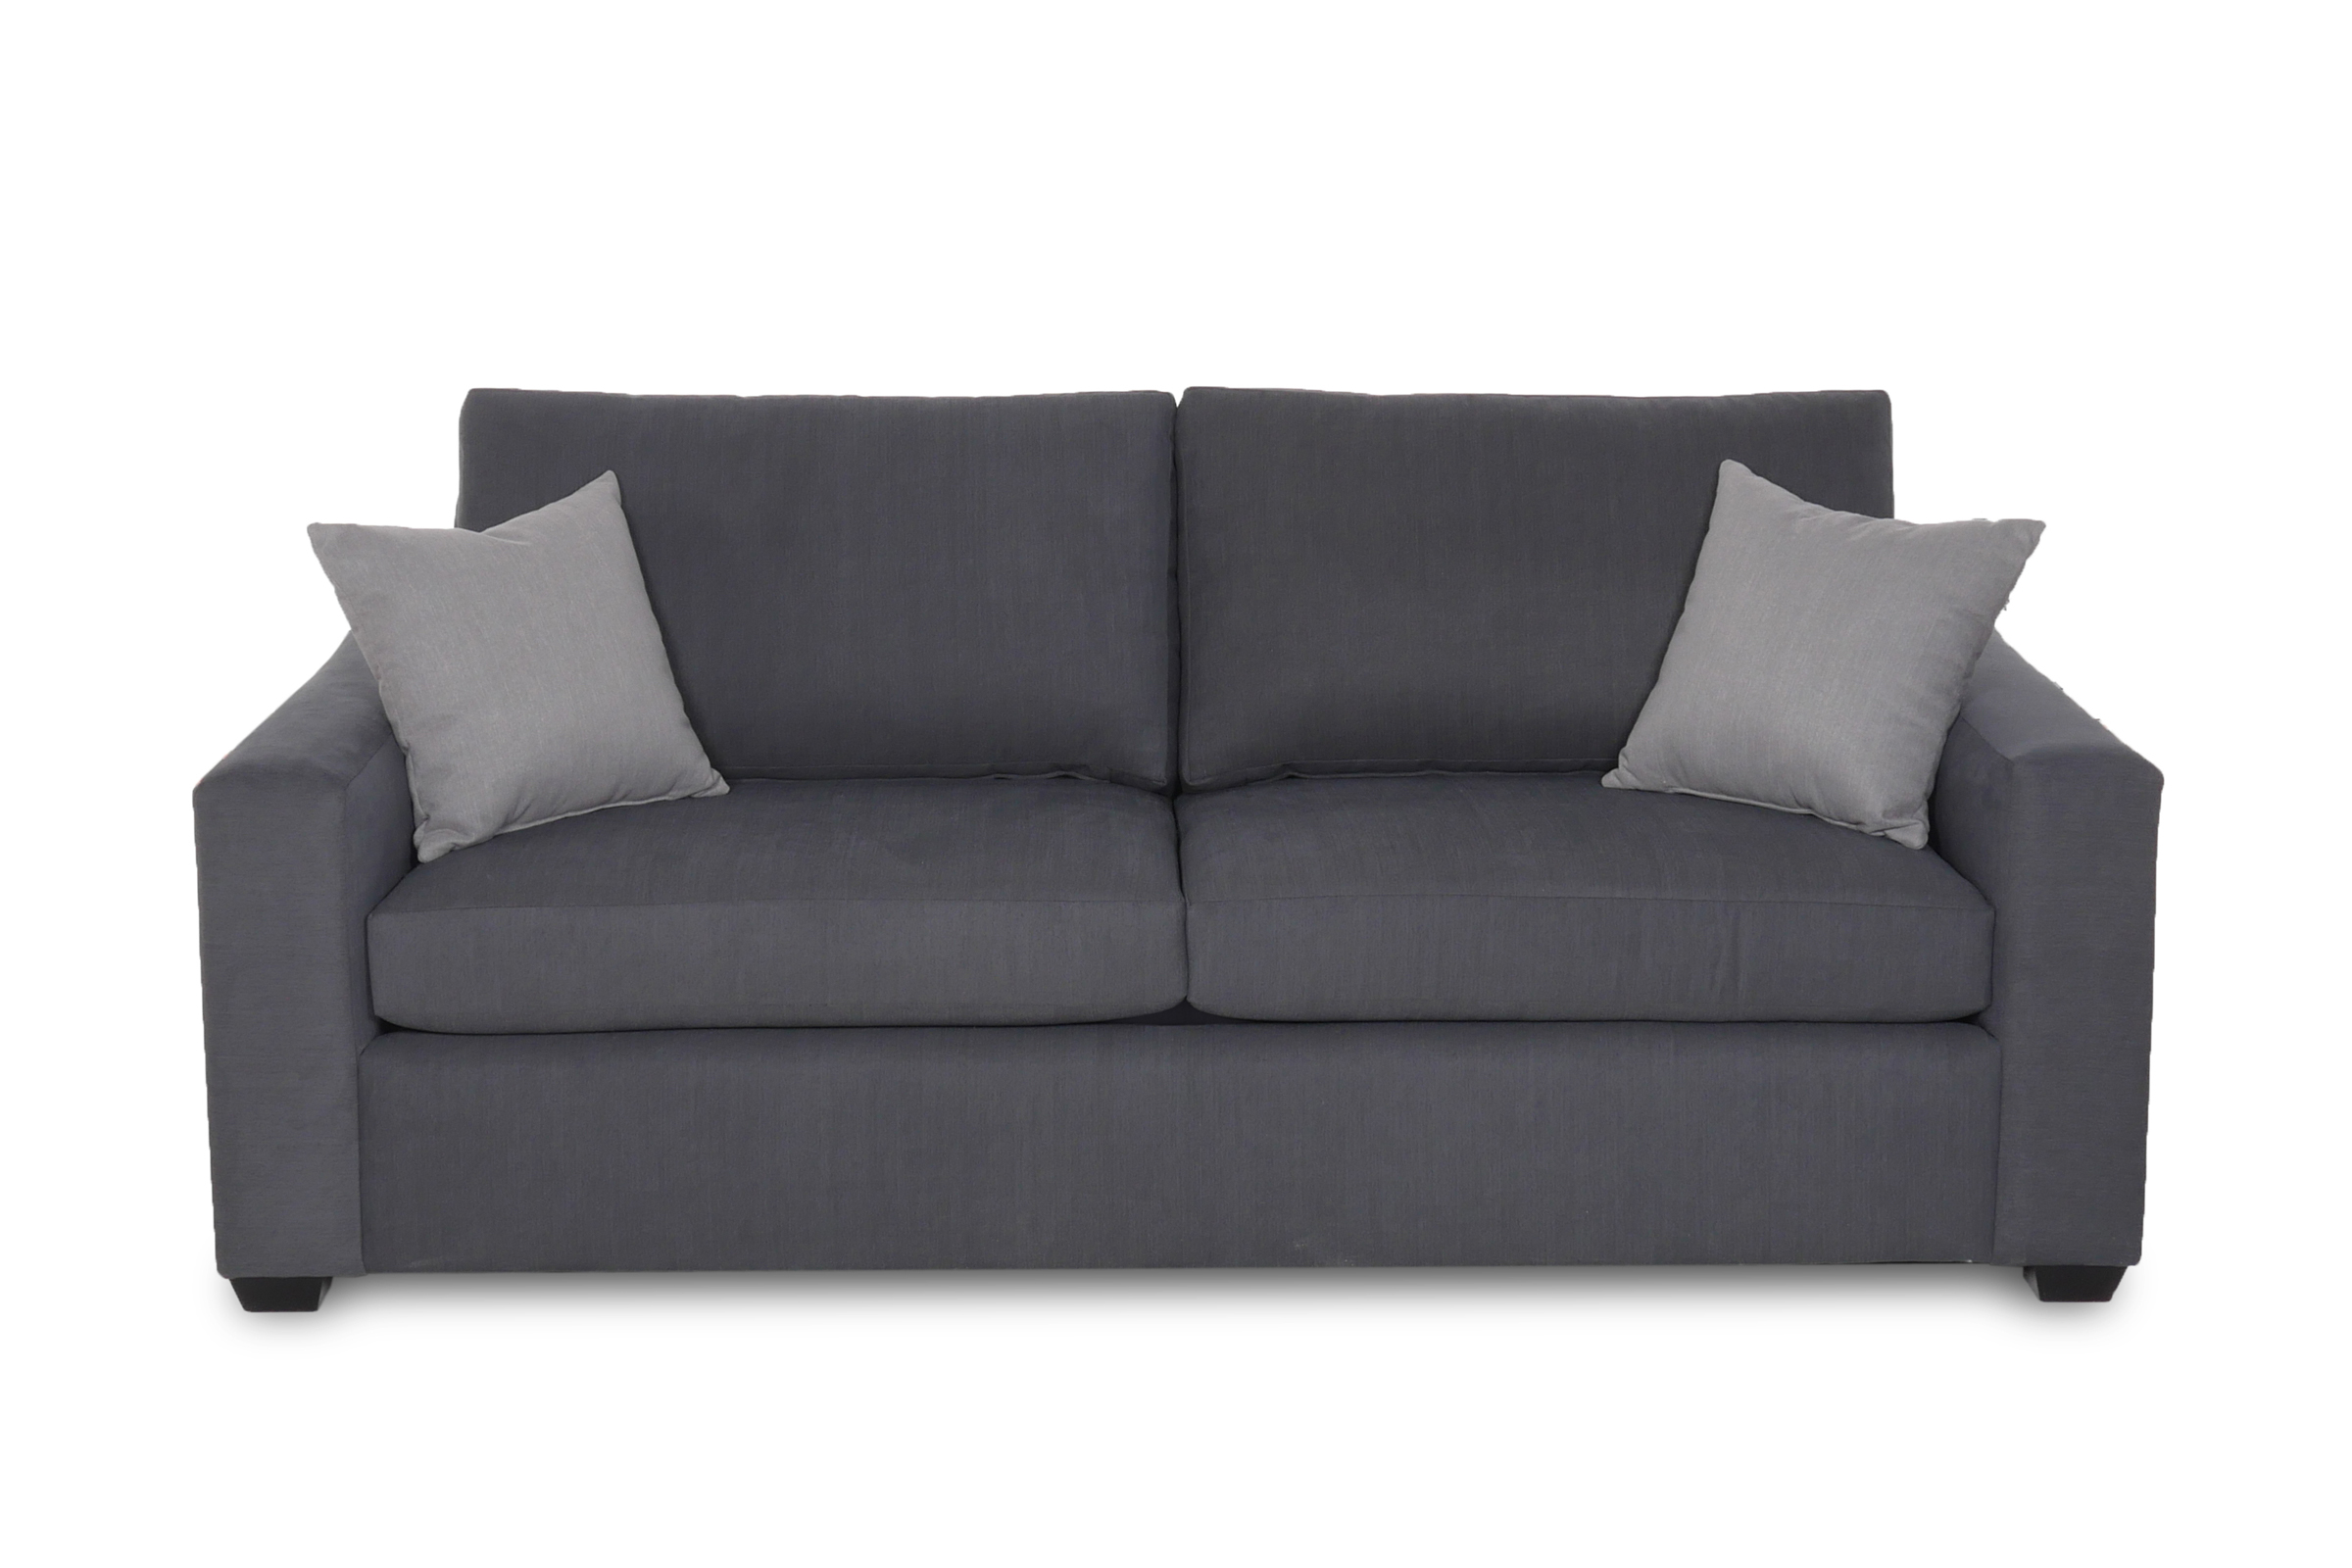 Smith Sofa Customizable Furniture